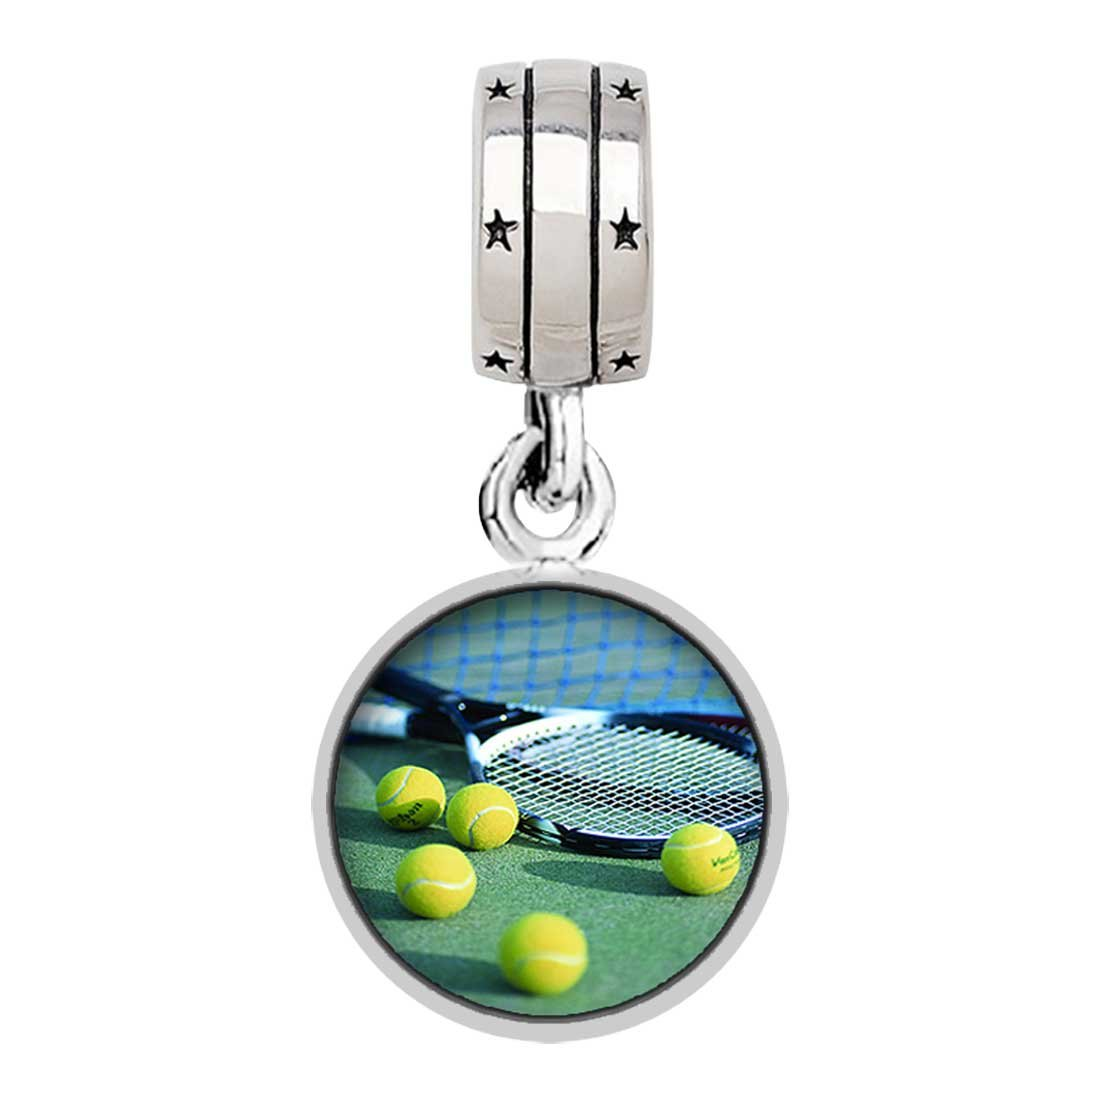 GiftJewelryShop Olympics Tennis Balls and Racket on Court with God All Things are Possible Religious Dangle Charm